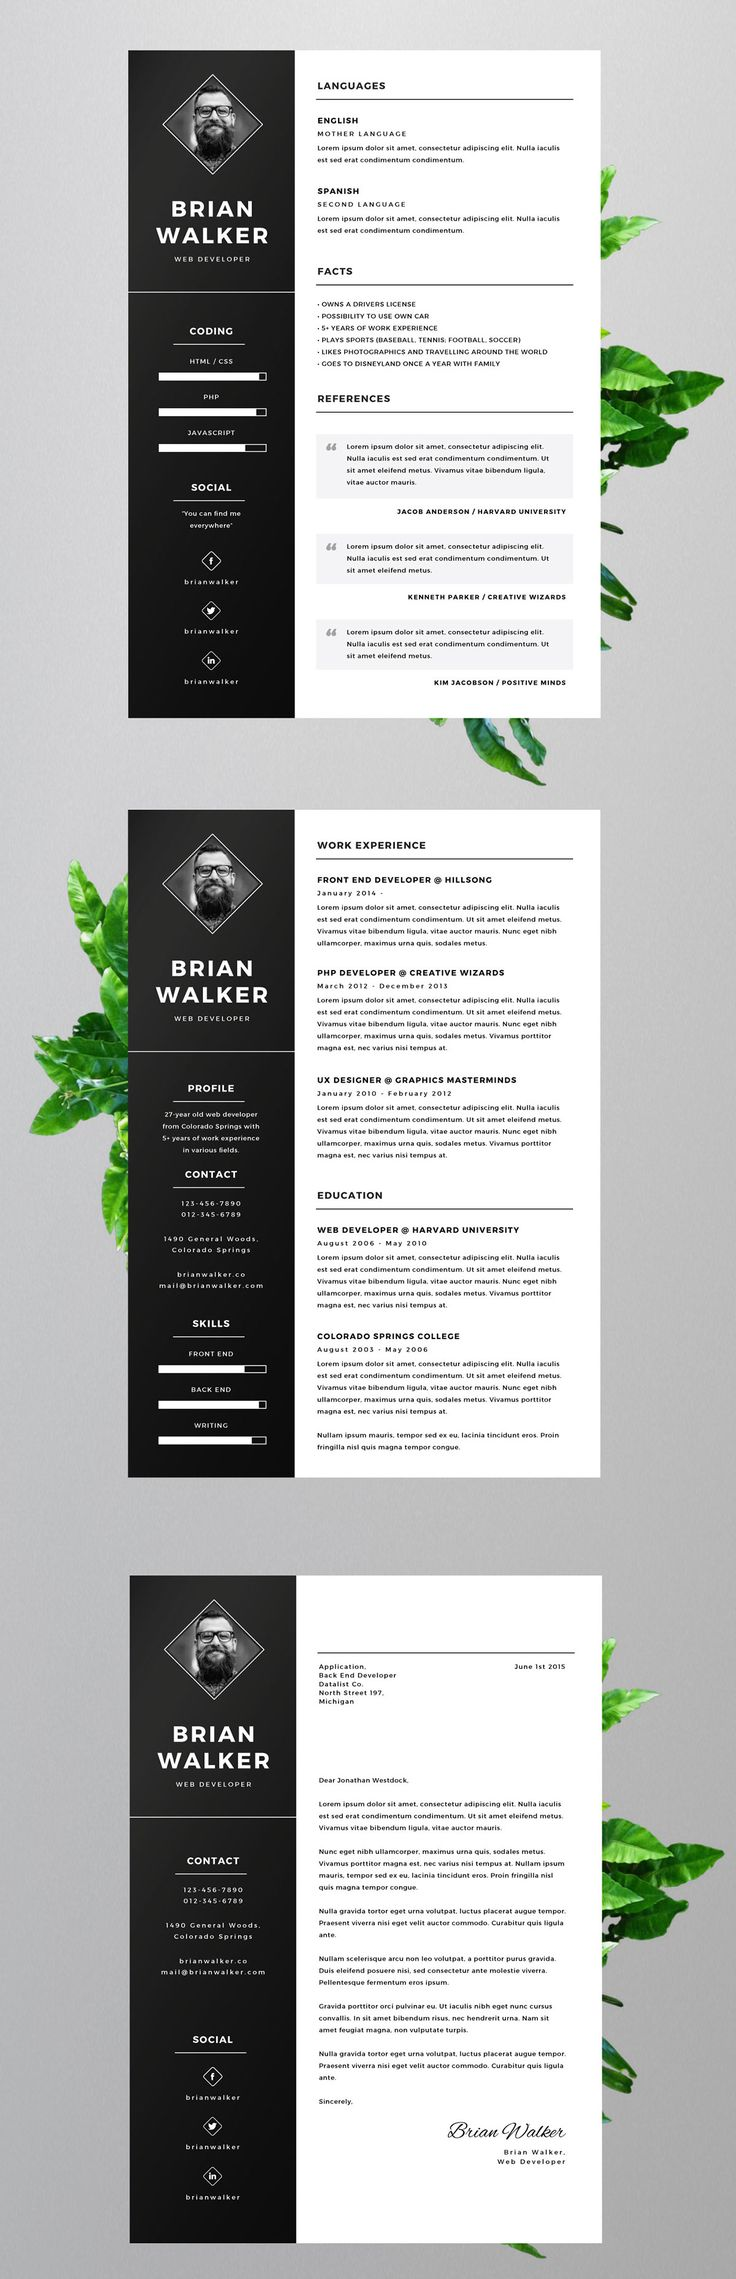 free resume template for microsoft word adobe photoshop and adobe illustrator free for personal. Resume Example. Resume CV Cover Letter